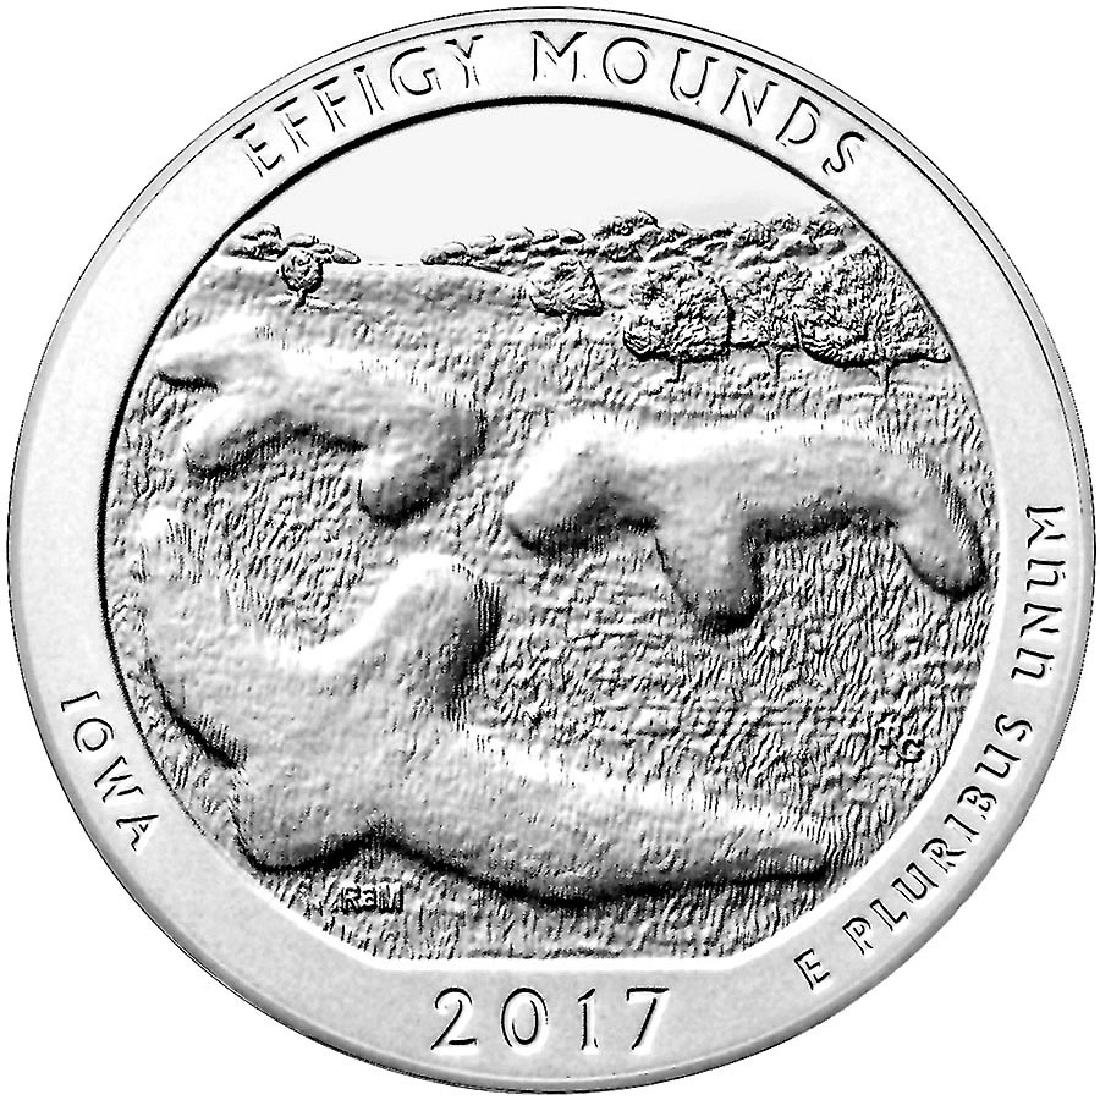 2017 Silver 5oz. Effigy Mounds National Monument ATB